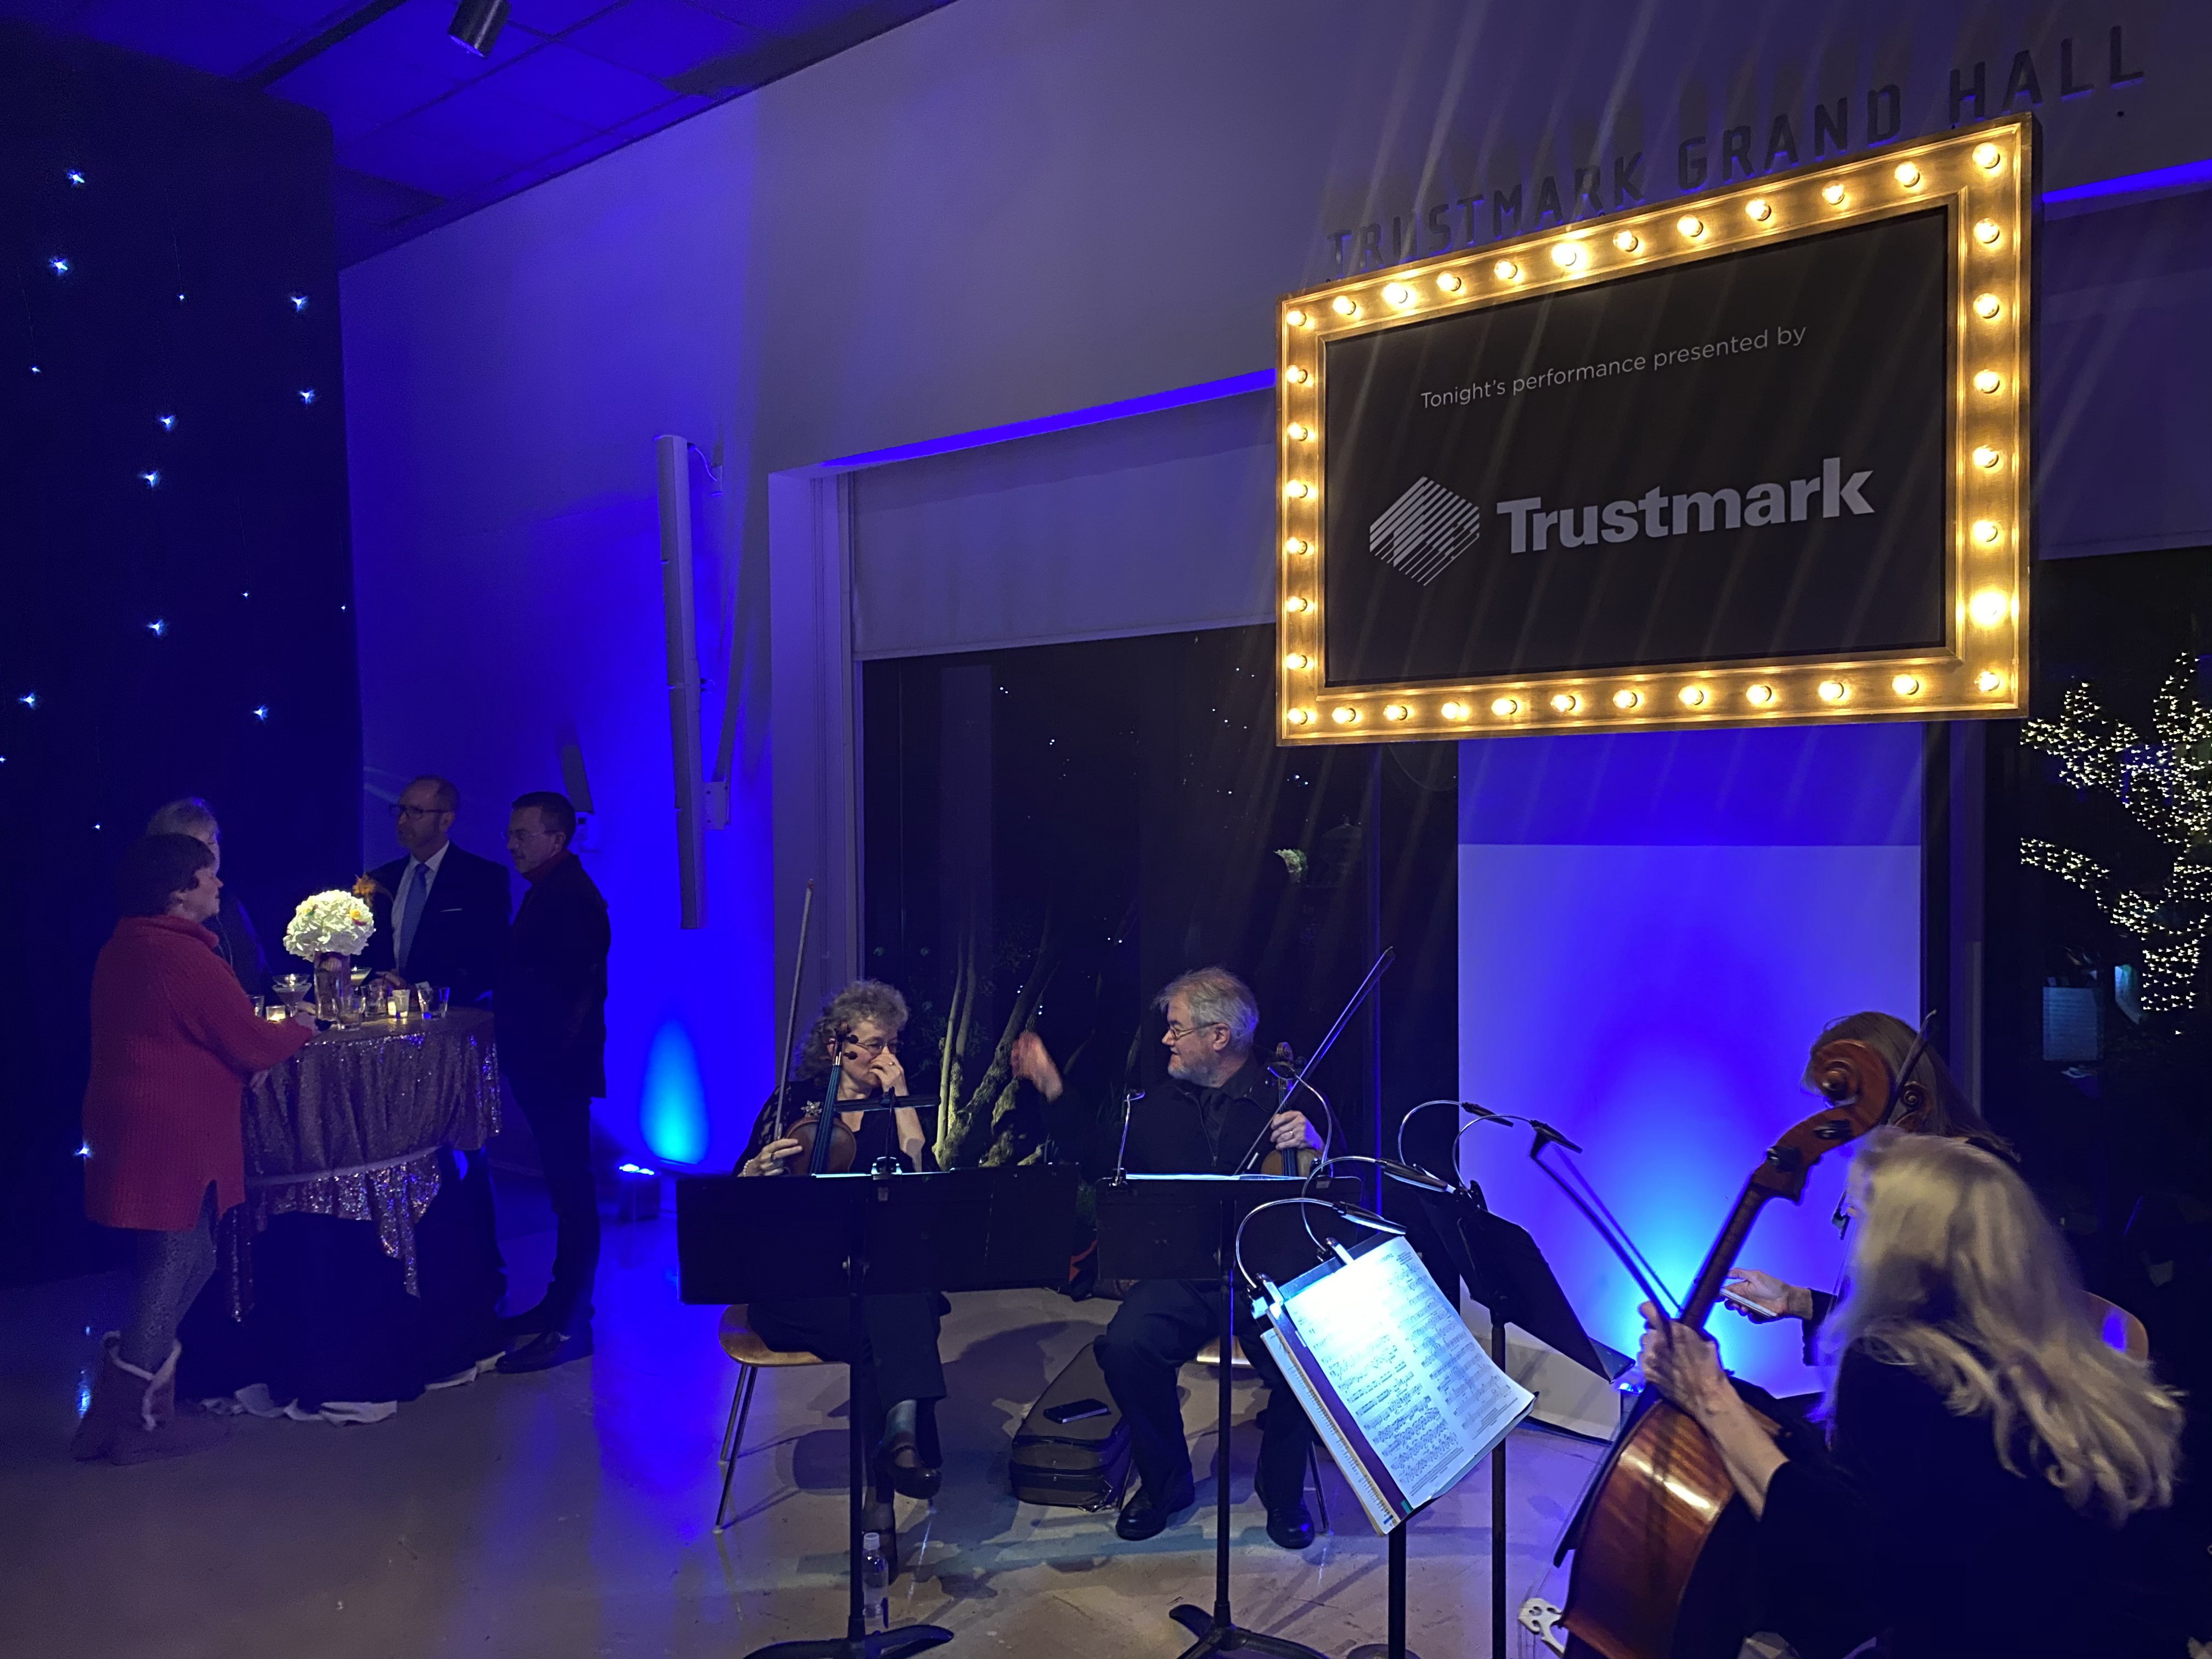 Live Music at Trustmark Customer Party